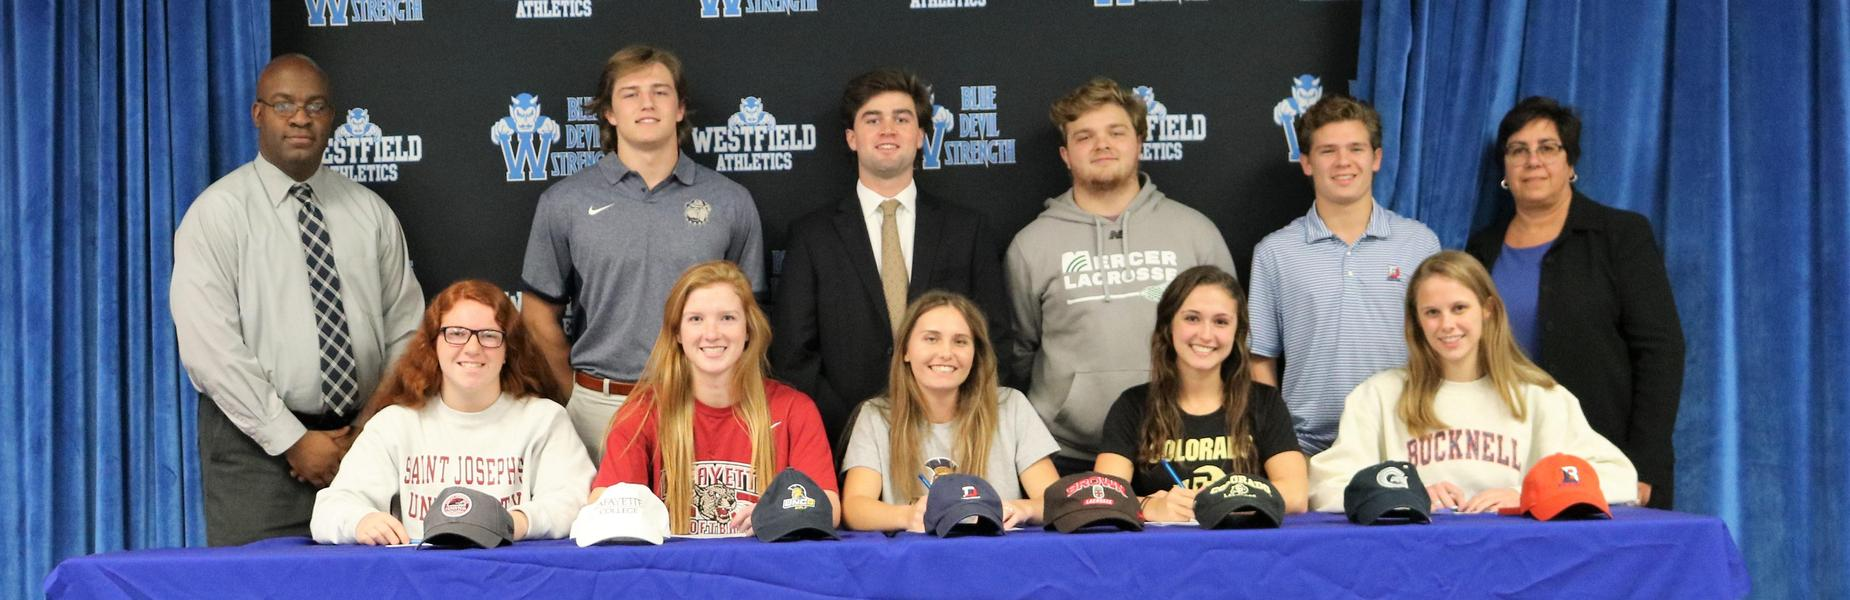 :  Nine WHS seniors sign Letters of Intent to play sports at the college level. Seated L-R: Erica Lawrence, Julia Romano, Anna Bowman, Carley Farella, Olivia Shields.  Standing L-R:  WHS Principal Dr. Derrick Nelson, Griffin Aslanian, Devon McLane, Koury Kania, Henry Schwartz, WHS Supervisor of Athletics Sandra Mamary